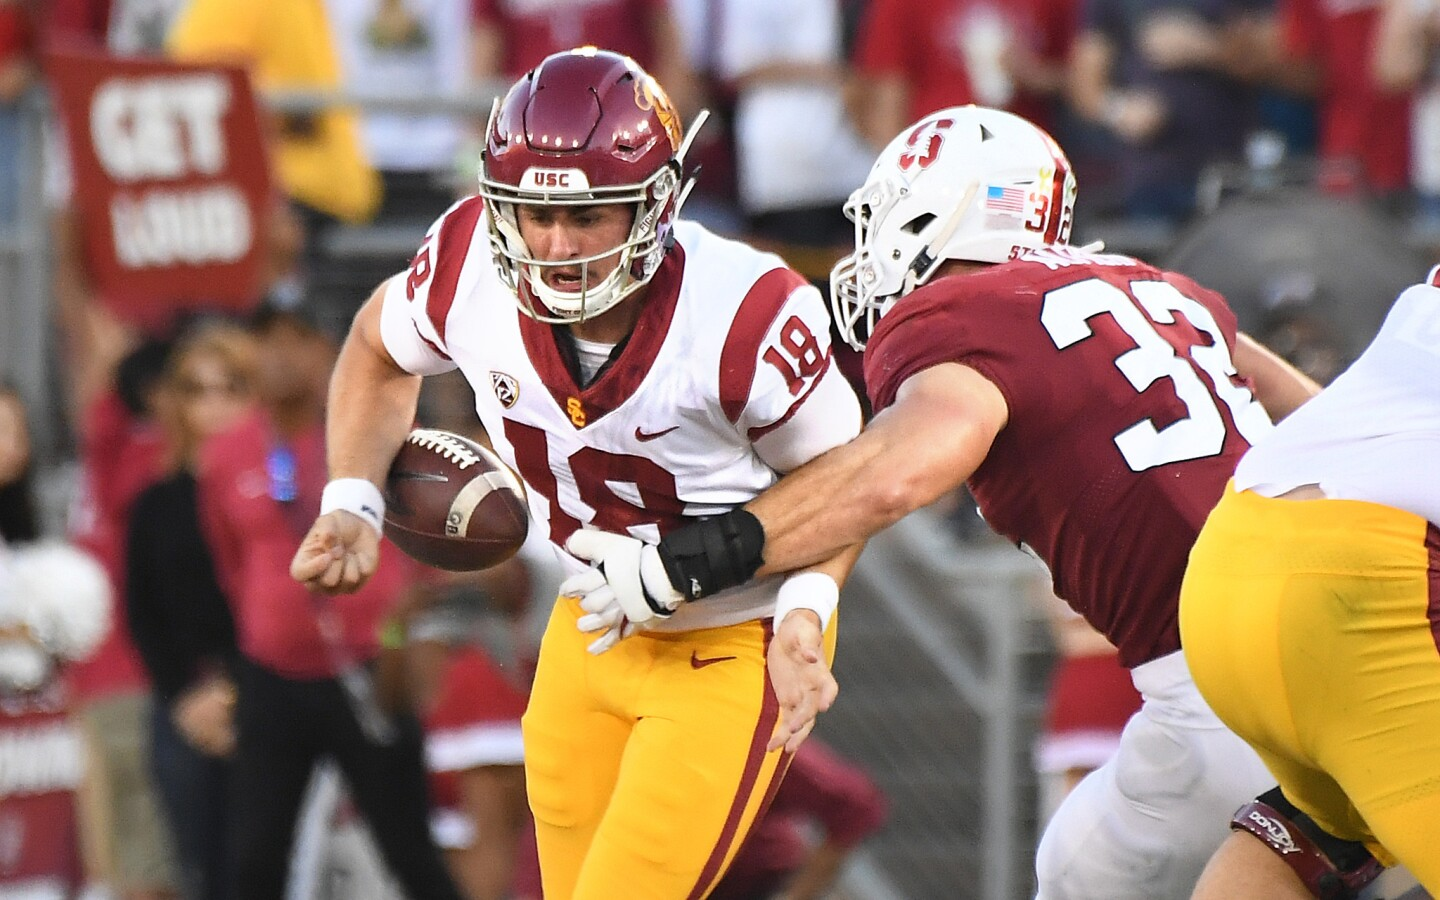 USC quarterback J.T. Daniels is stripped of the ball by Stanford linebacker Joey Alfieri on 4th down in the 2nd quarter.